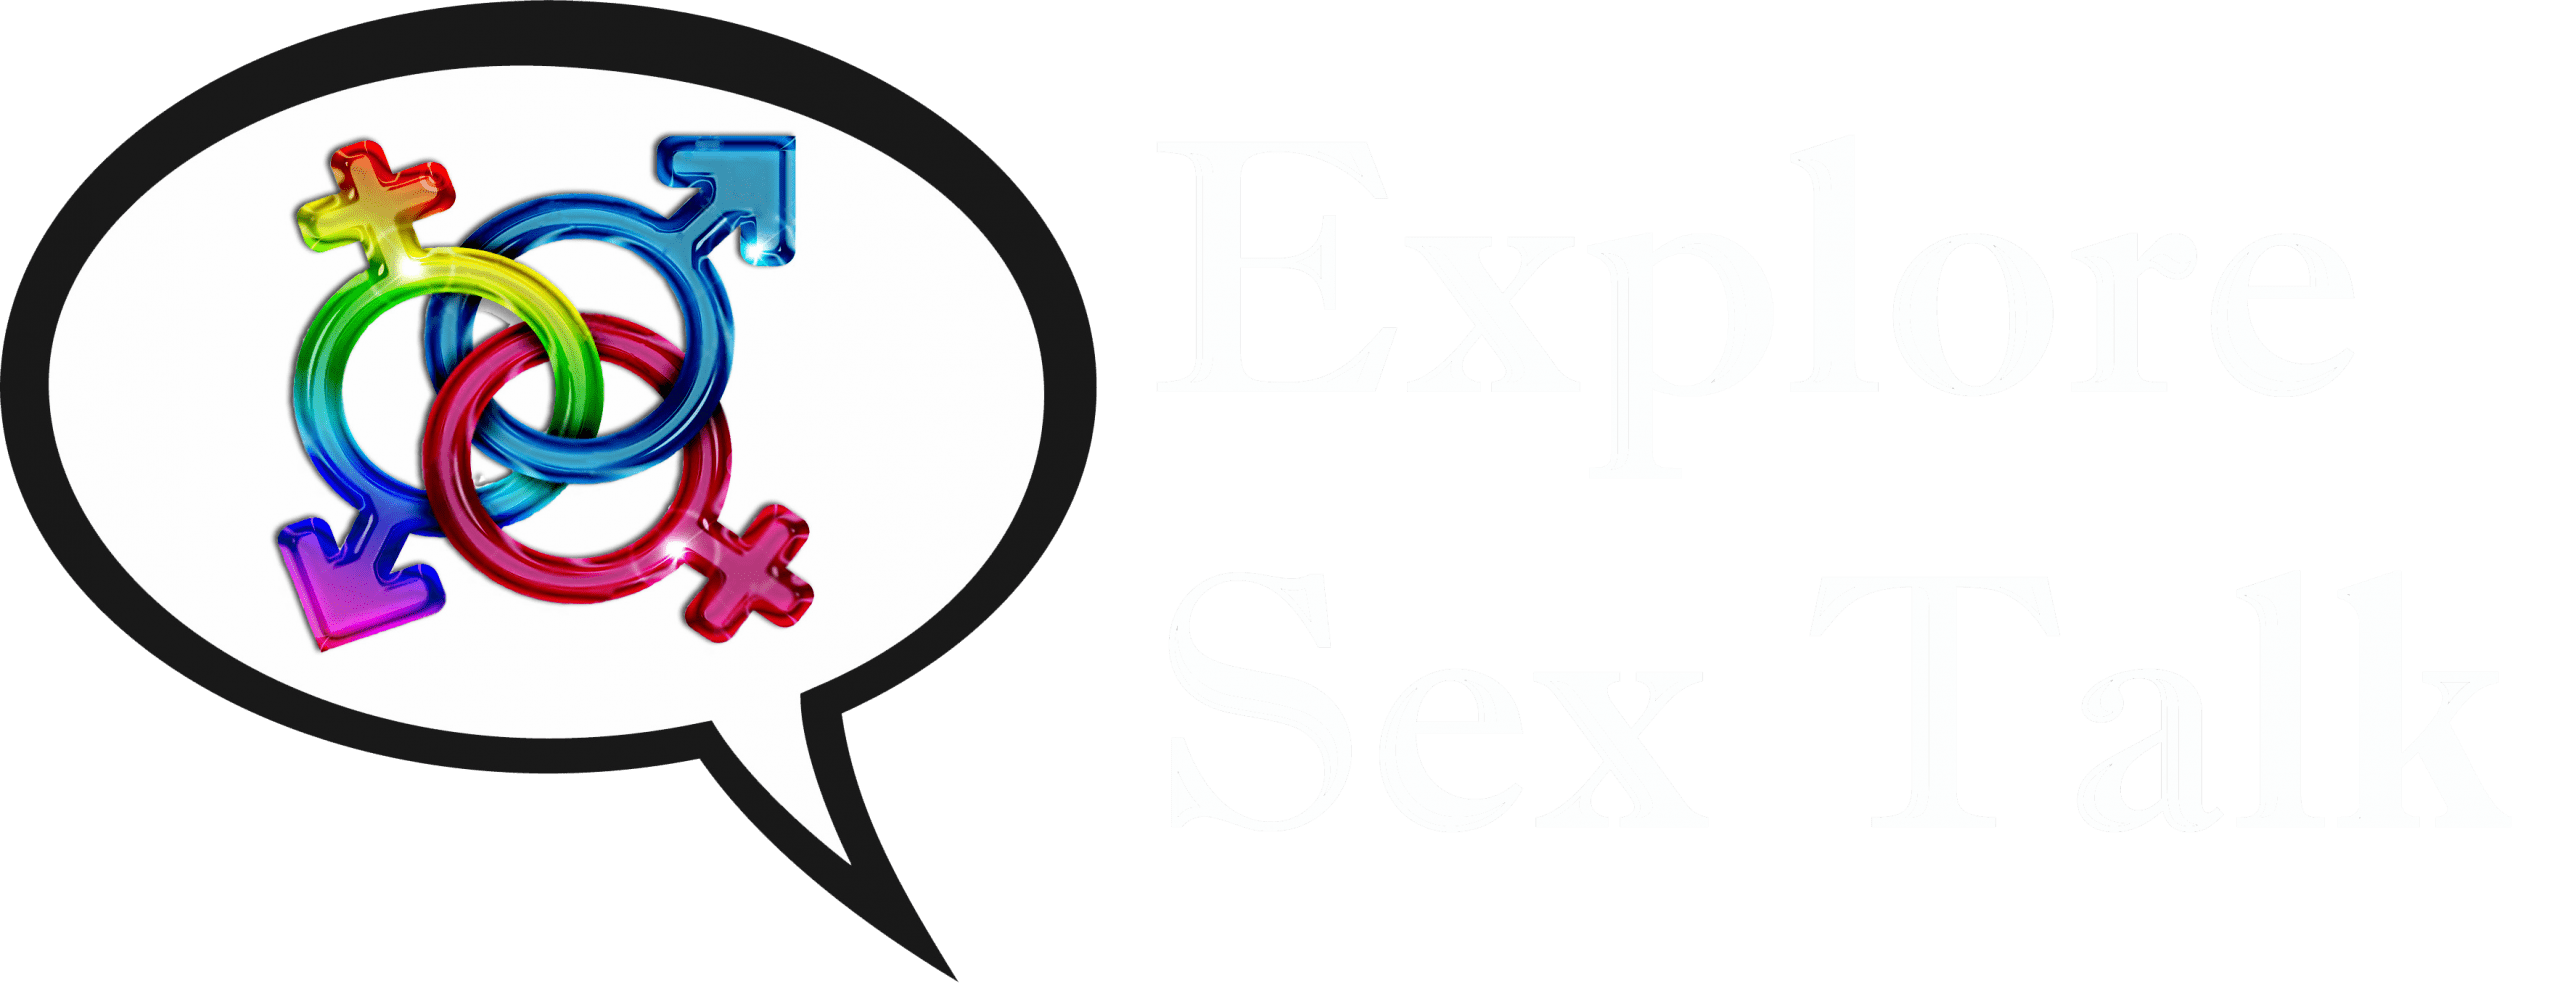 explore sex talk logo